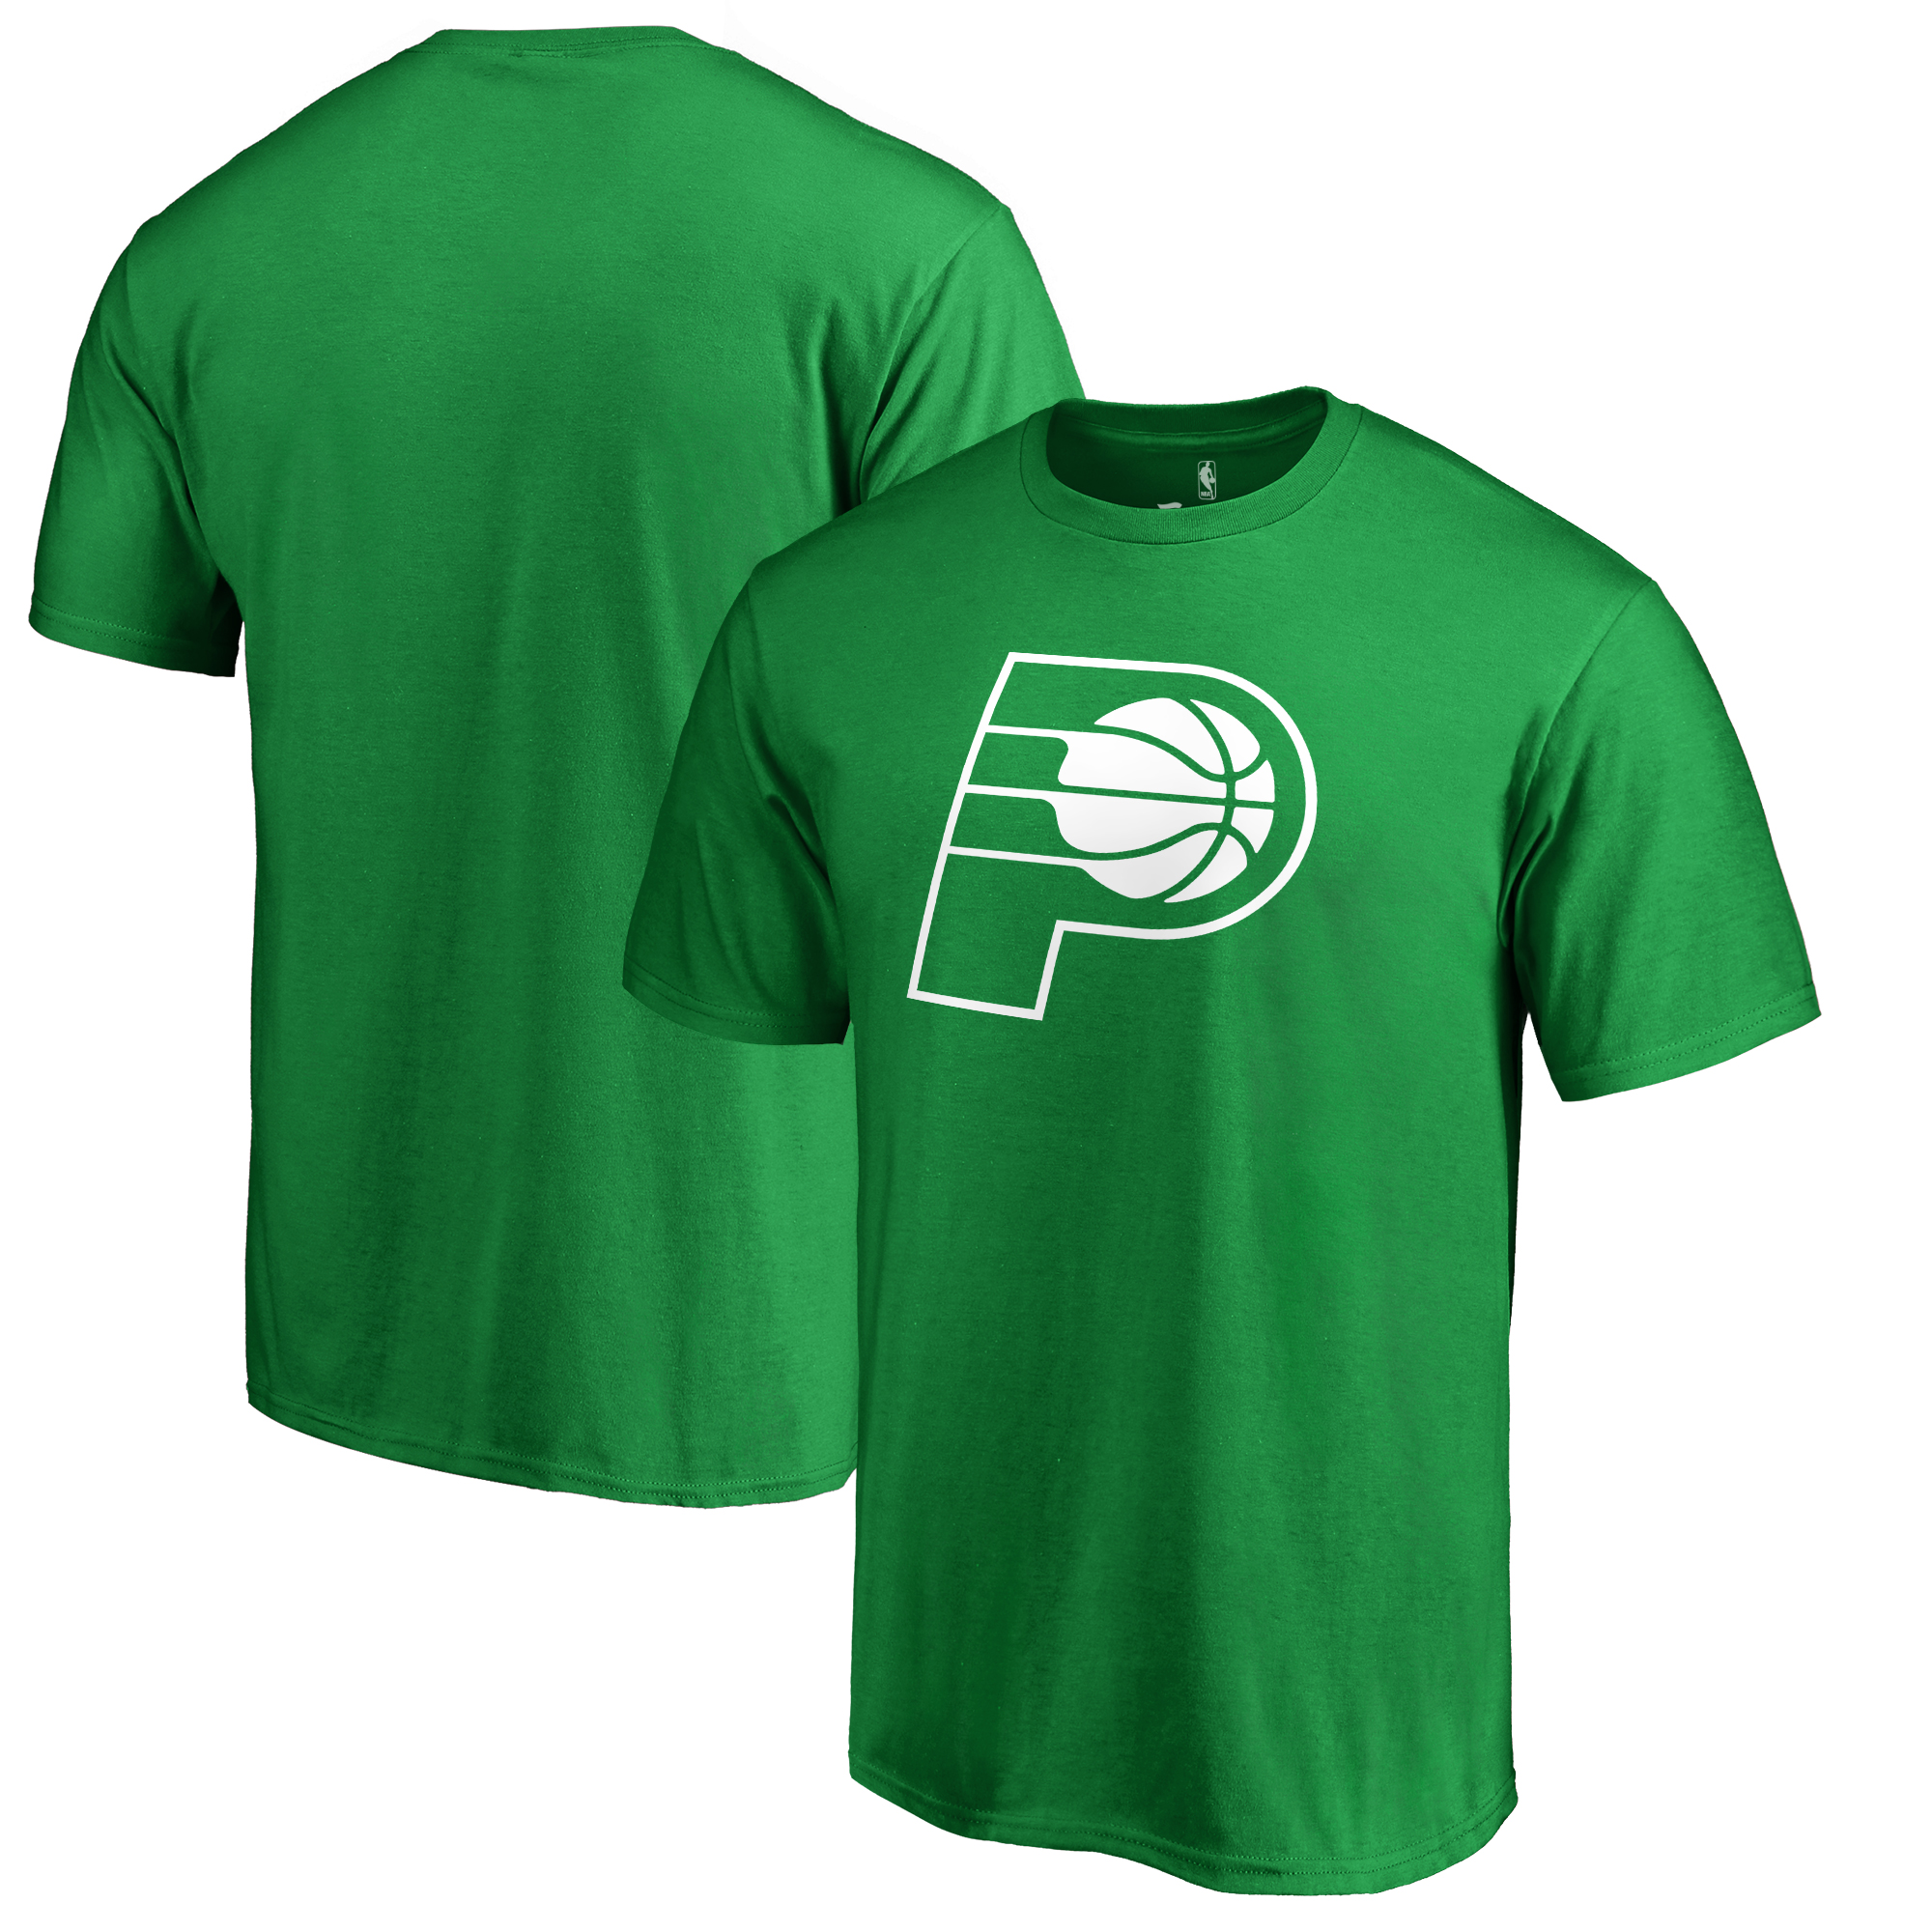 Indiana Pacers Fanatics Branded Big & Tall St. Patrick's Day White Logo T-Shirt - Green